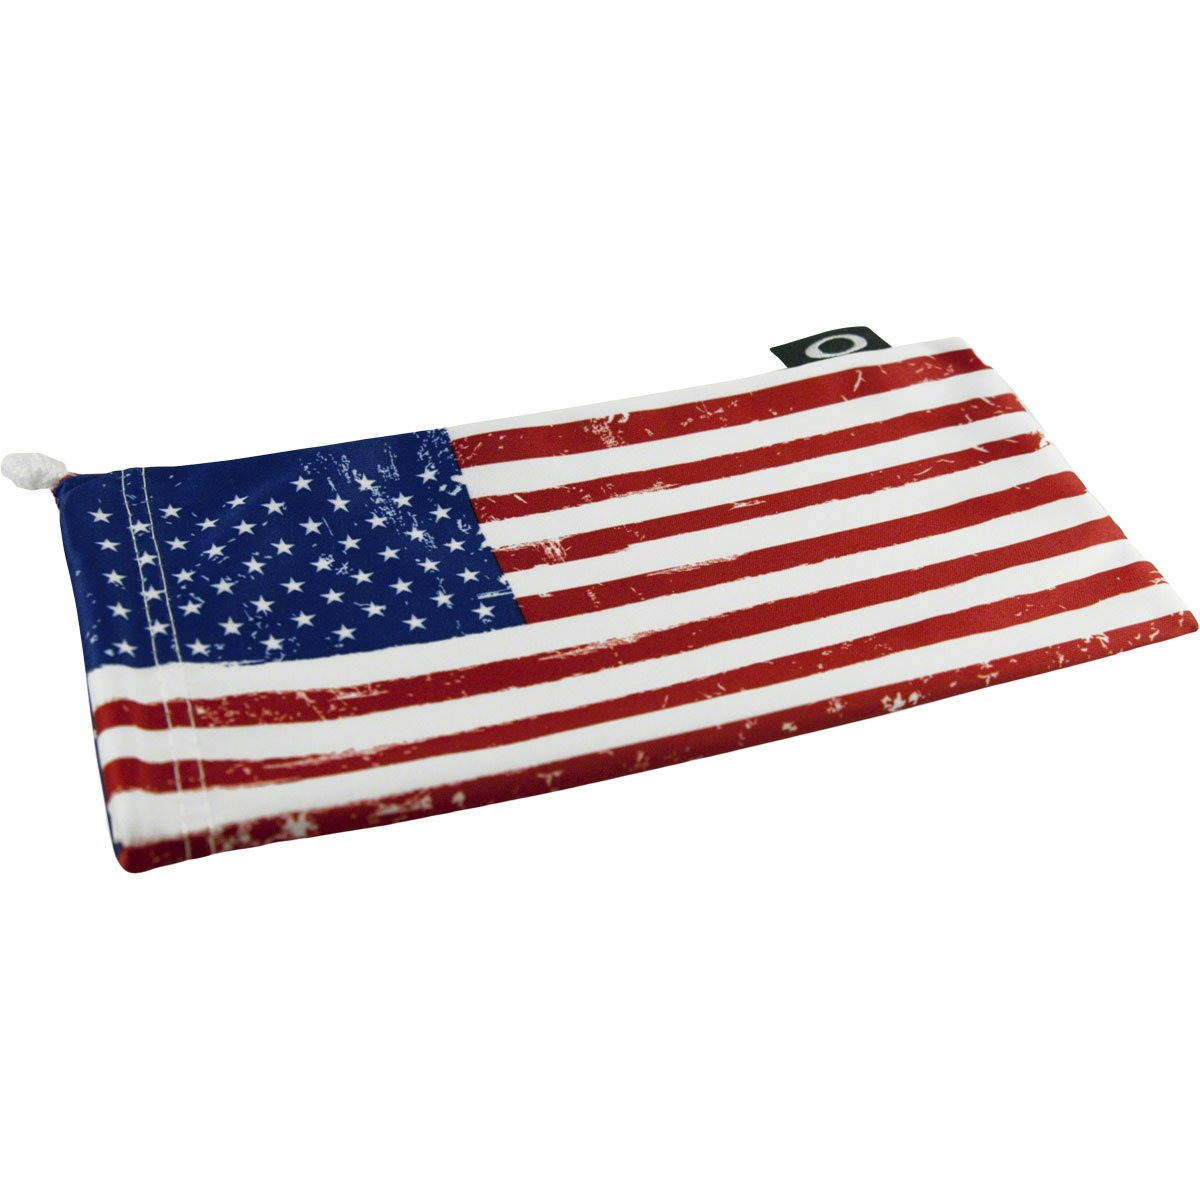 Oakley Microclear Microbag Sunglass Accessories - USA Flag/One Size by Oakley